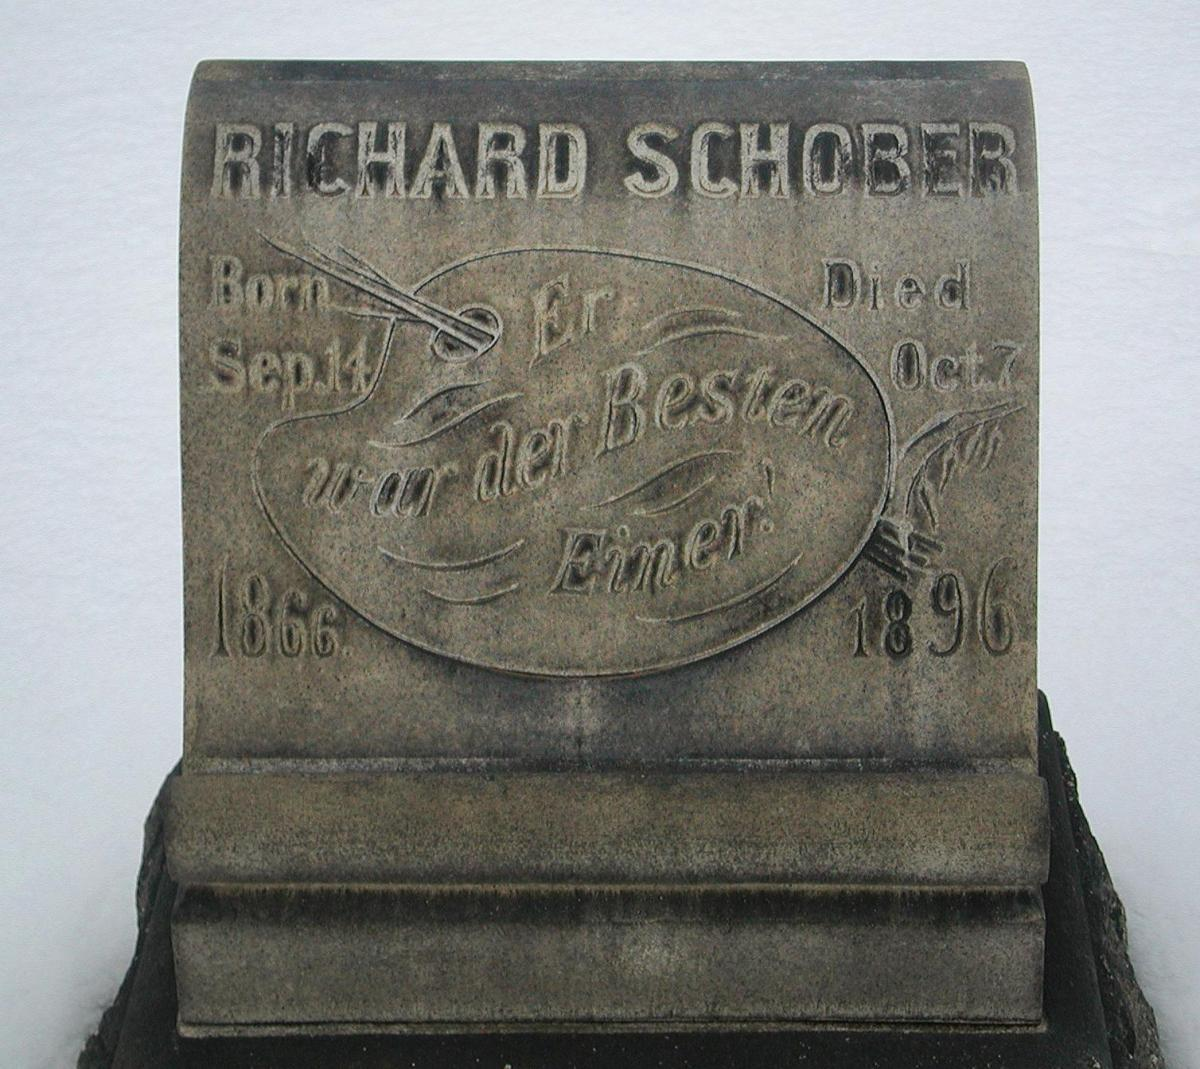 Photo shows a gray headstone in the snow. It is decorated with an artist's tools, a man's name at the top, dates, and text in German.